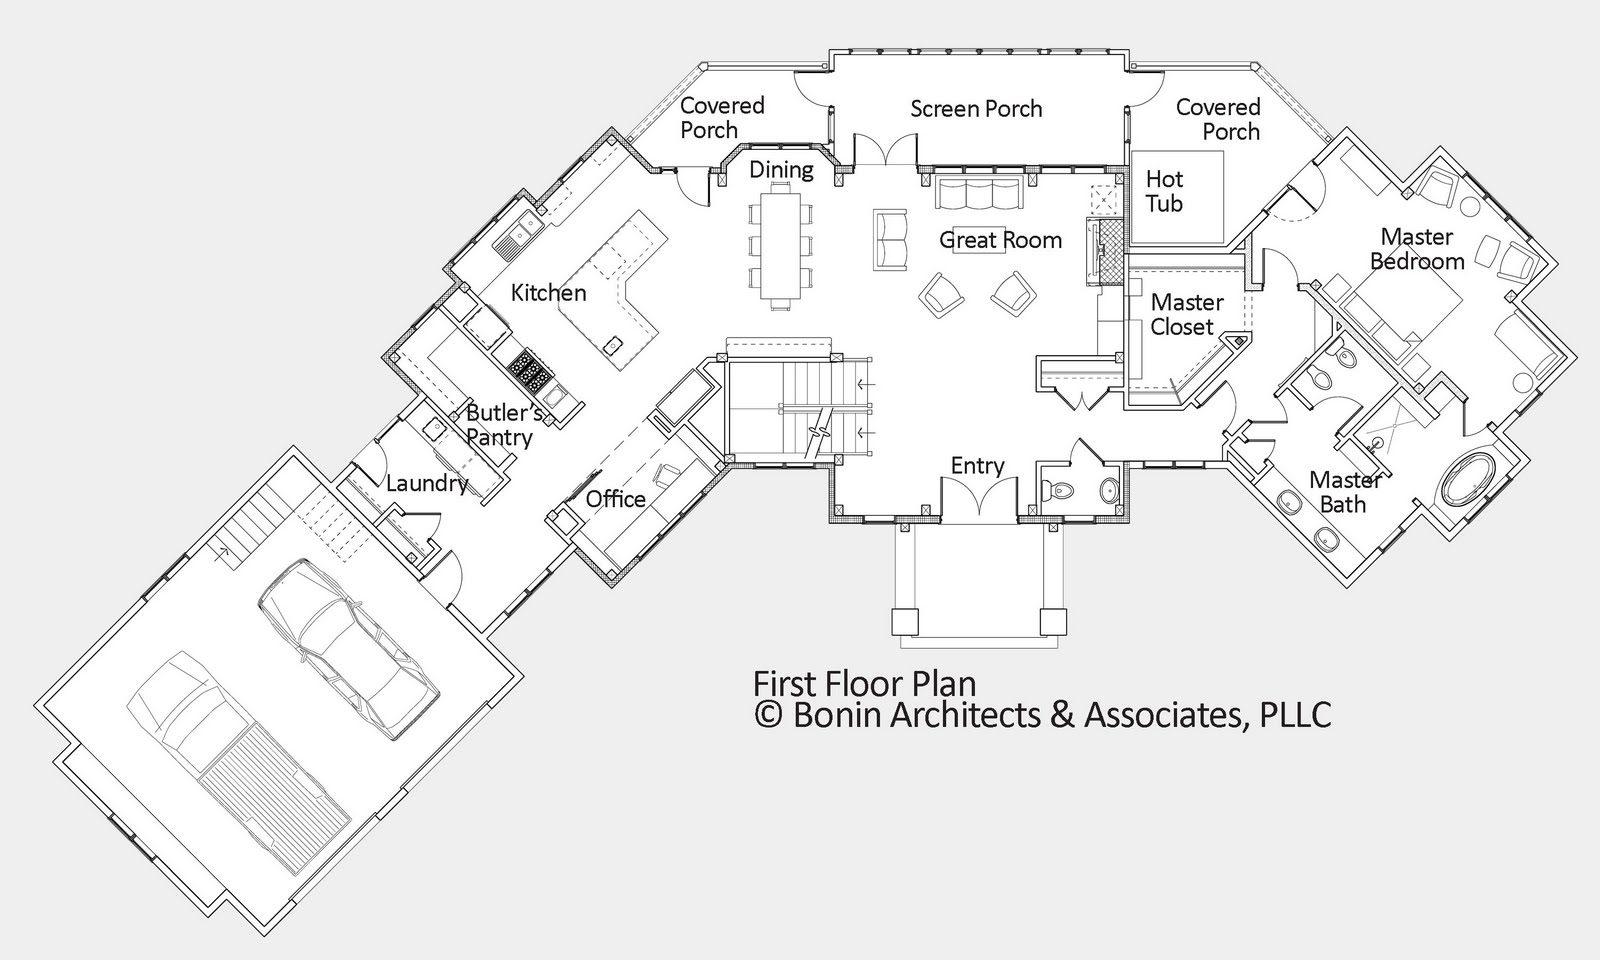 luxury home floor plans custom luxury home plans fp luxury home floor plans house plans designs